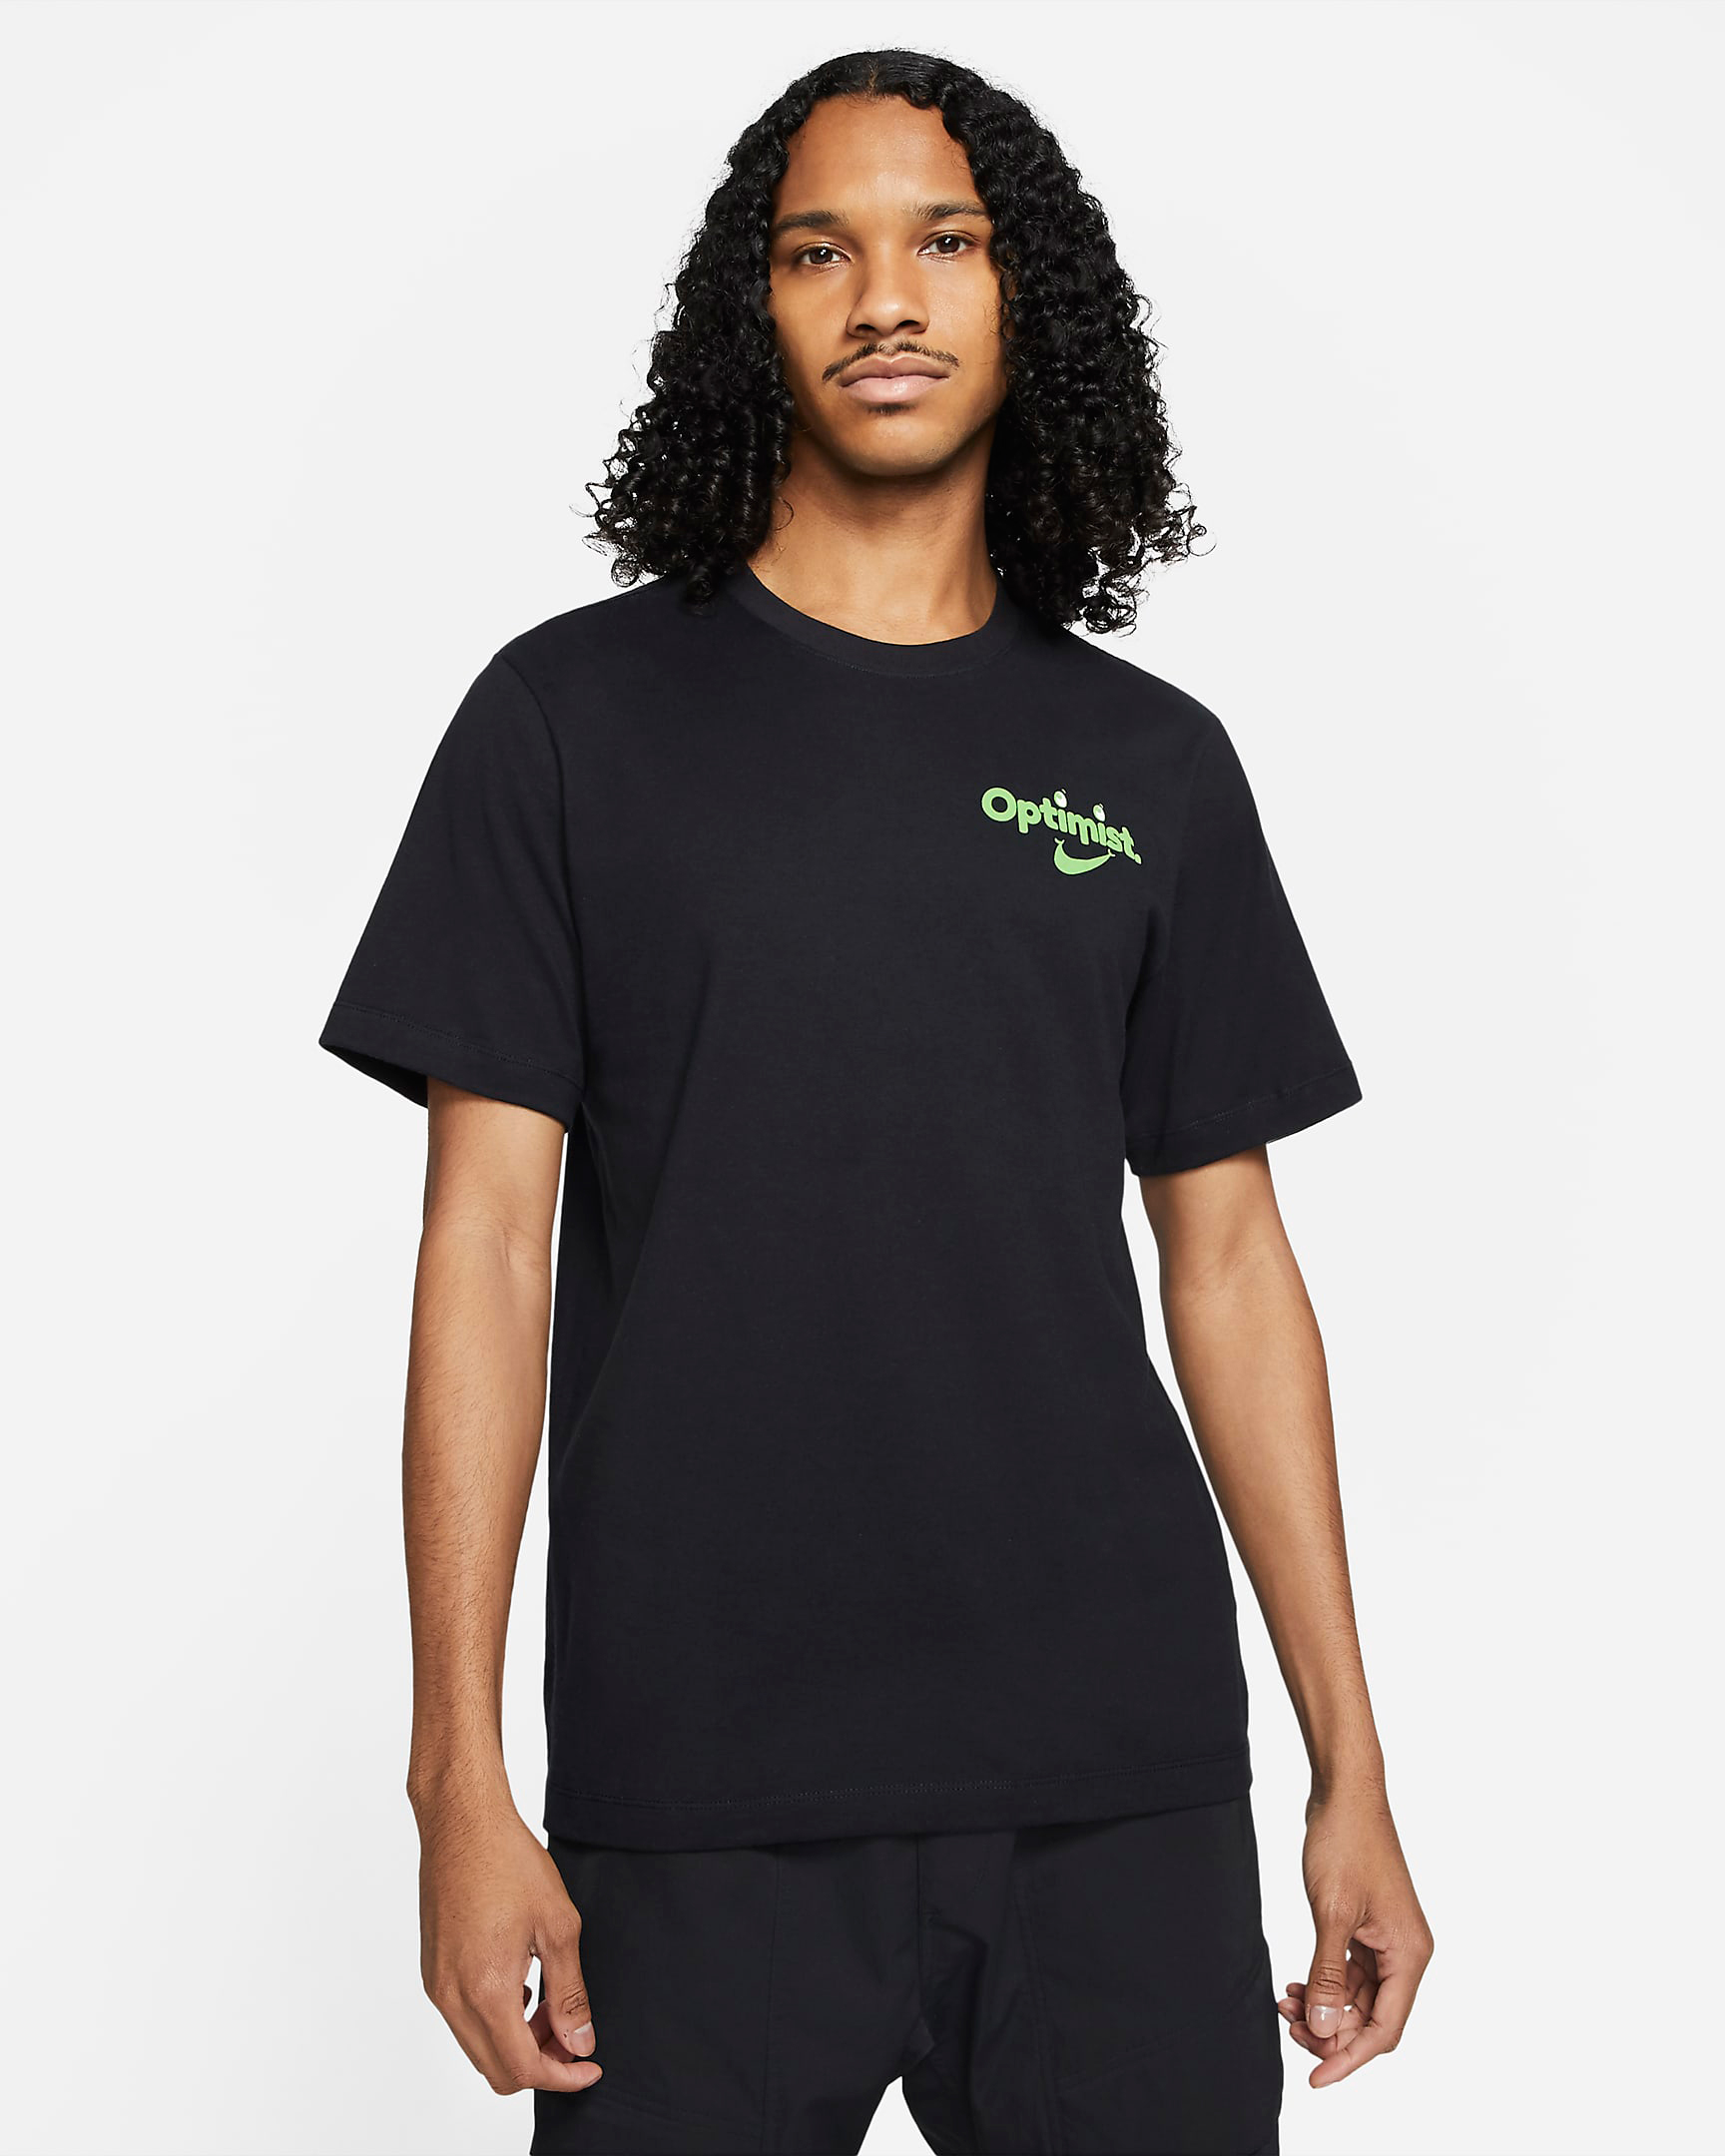 nike-sportswear-optimist-shirt-black-green-1